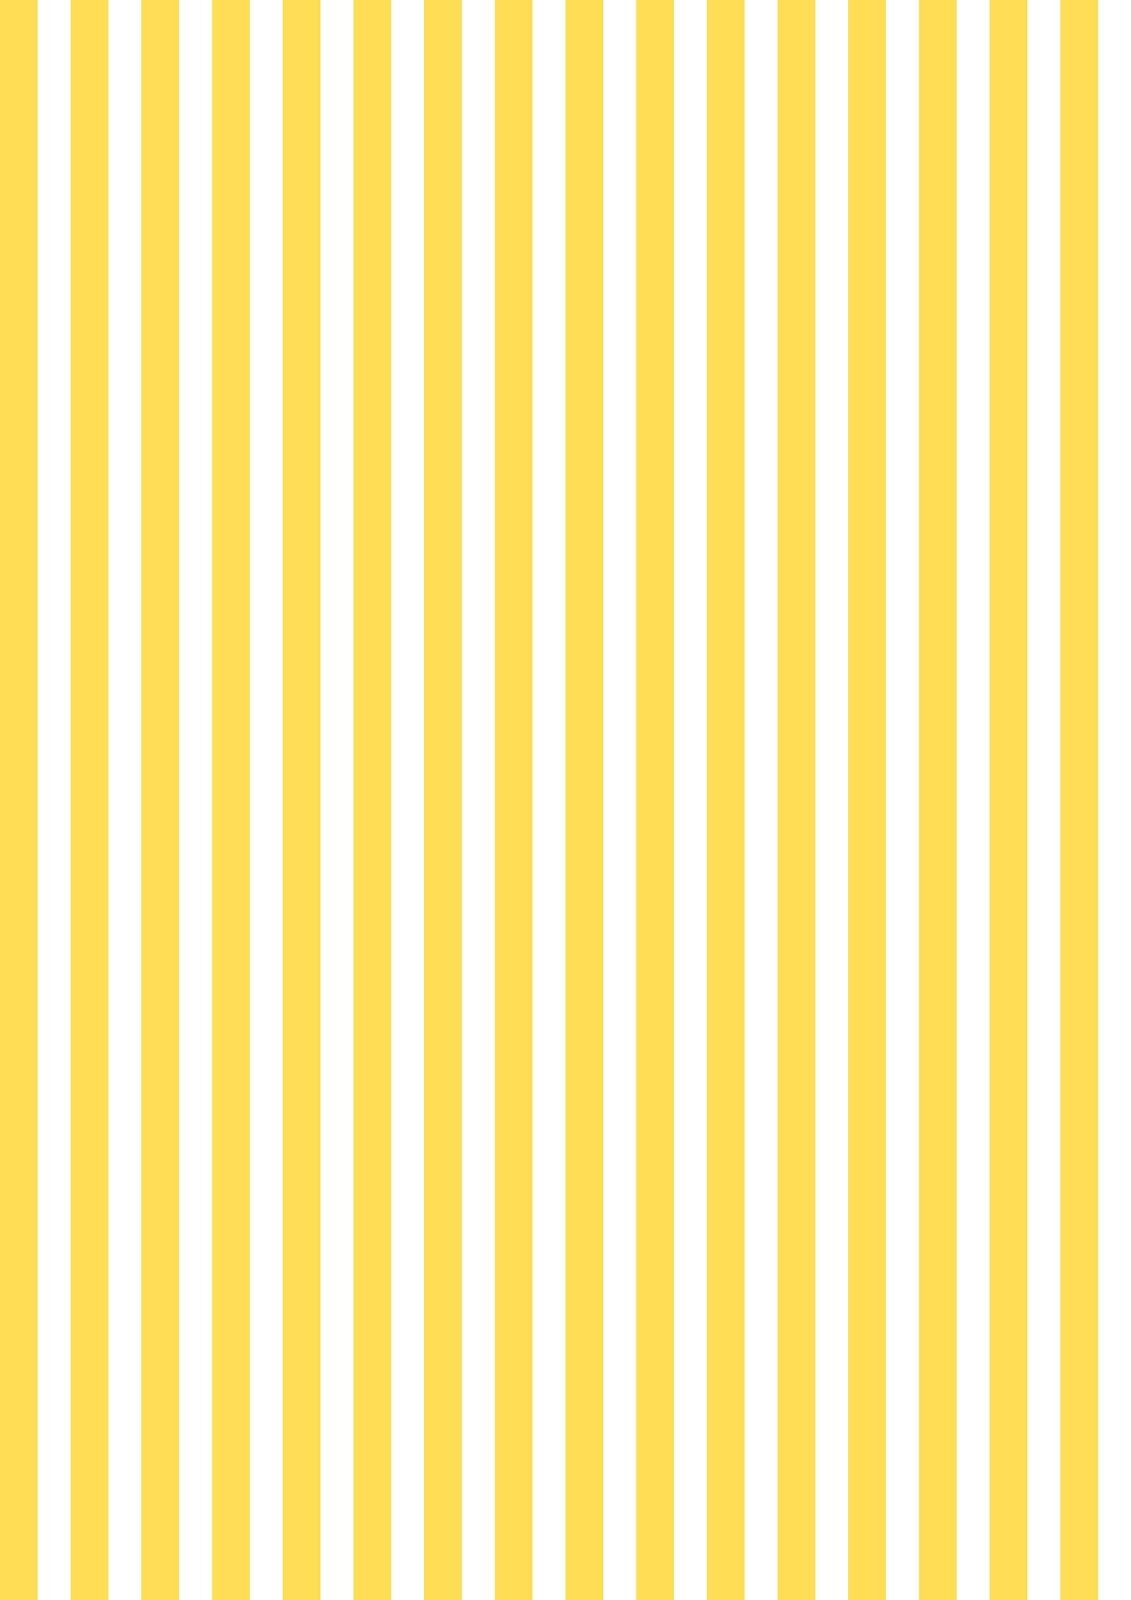 Free Digital Striped Sbooking Paper Ausdruckbares Geschenkpapier Freebie Wallpaperstripe Iphone Wallpaperwhite